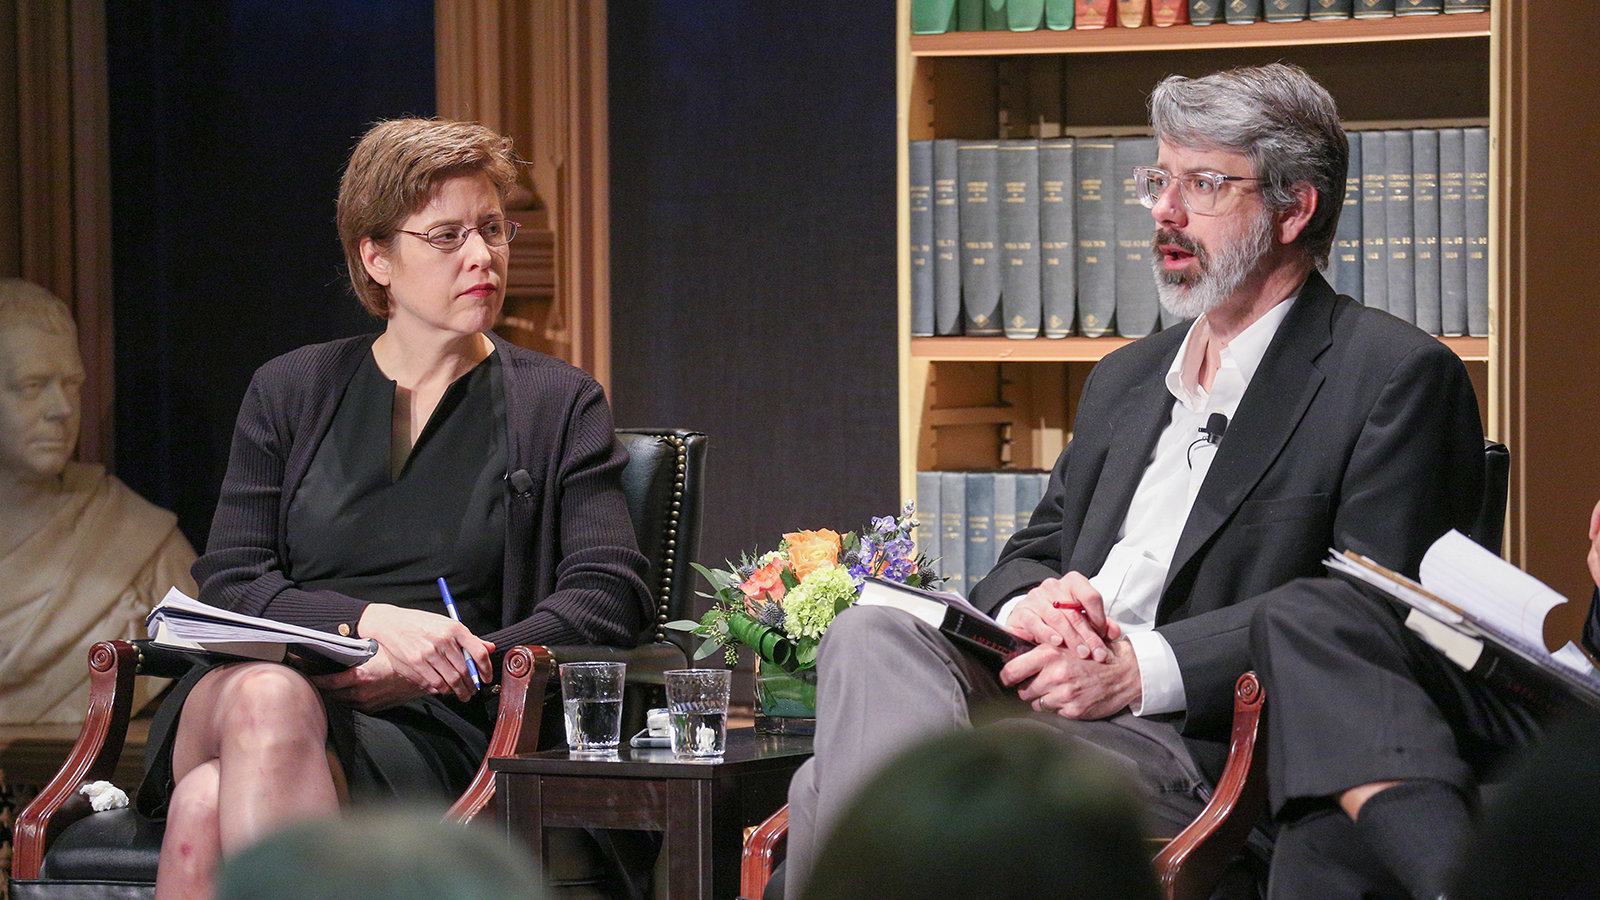 Ted Olsen, editorial director of Christianity Today, speaks about the media and polarized politics.